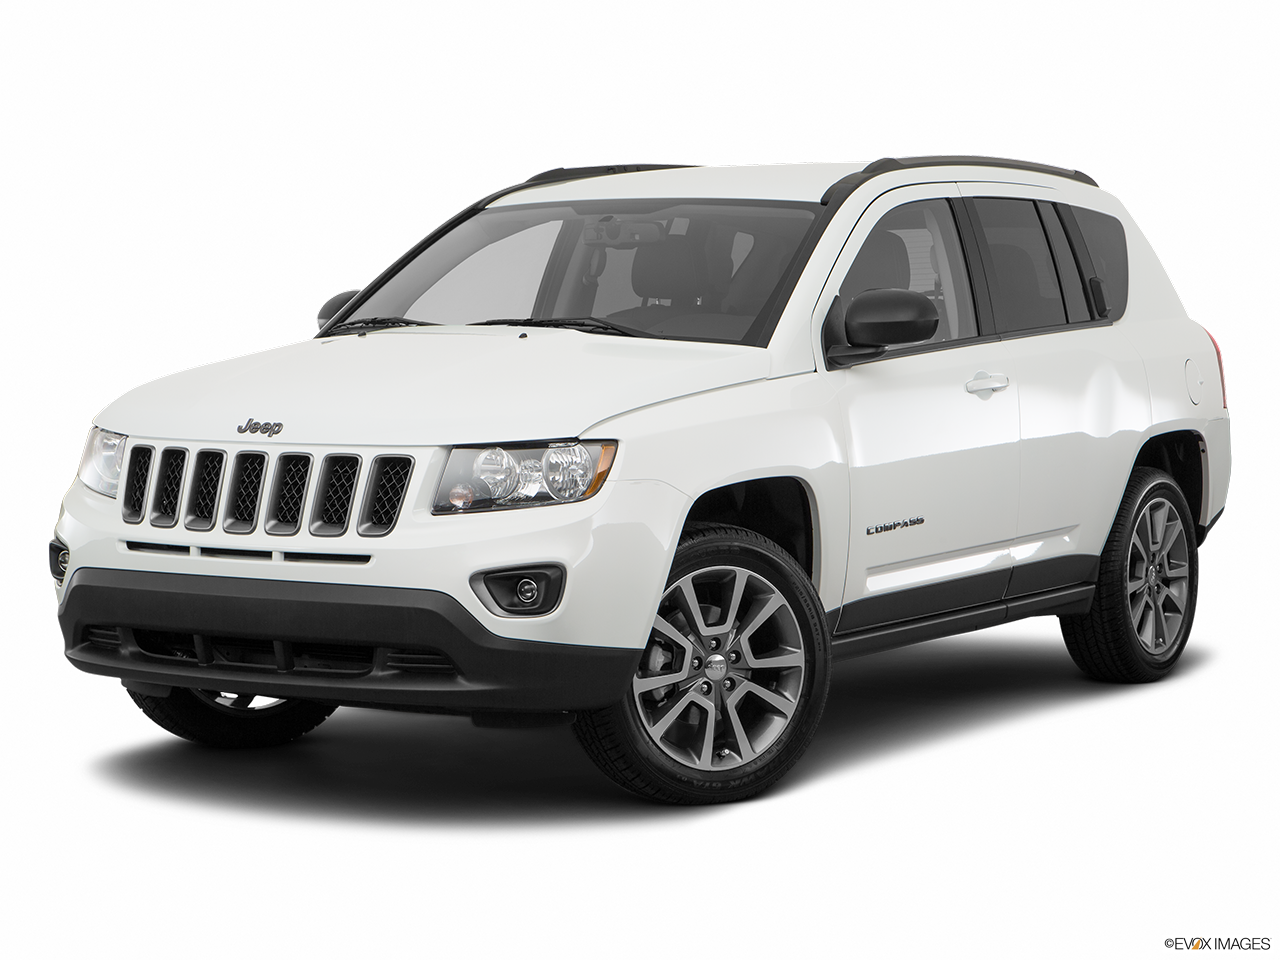 Test Drive A 2017 Jeep Compass at Arrigo Dodge Chrysler Jeep Ram Ft. Pierce in Fort Pierce